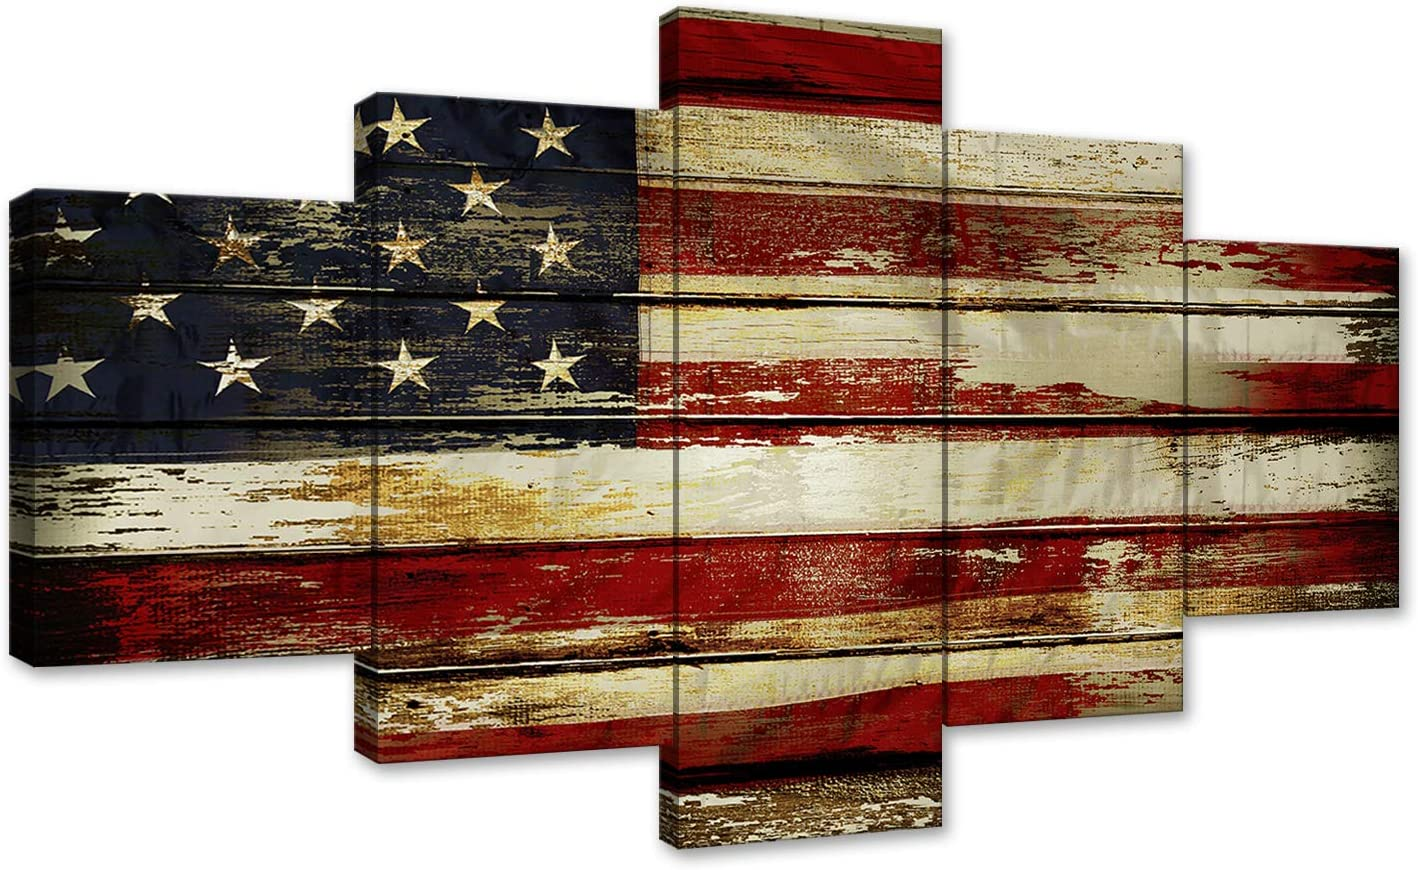 Vintage Wooden Style American Flag Independence Day Canvas Wall Art Painting 5 Panel Modern Posters and Prints Pictures for Living Room, Home Decor USA Flag Framed Ready to Hang